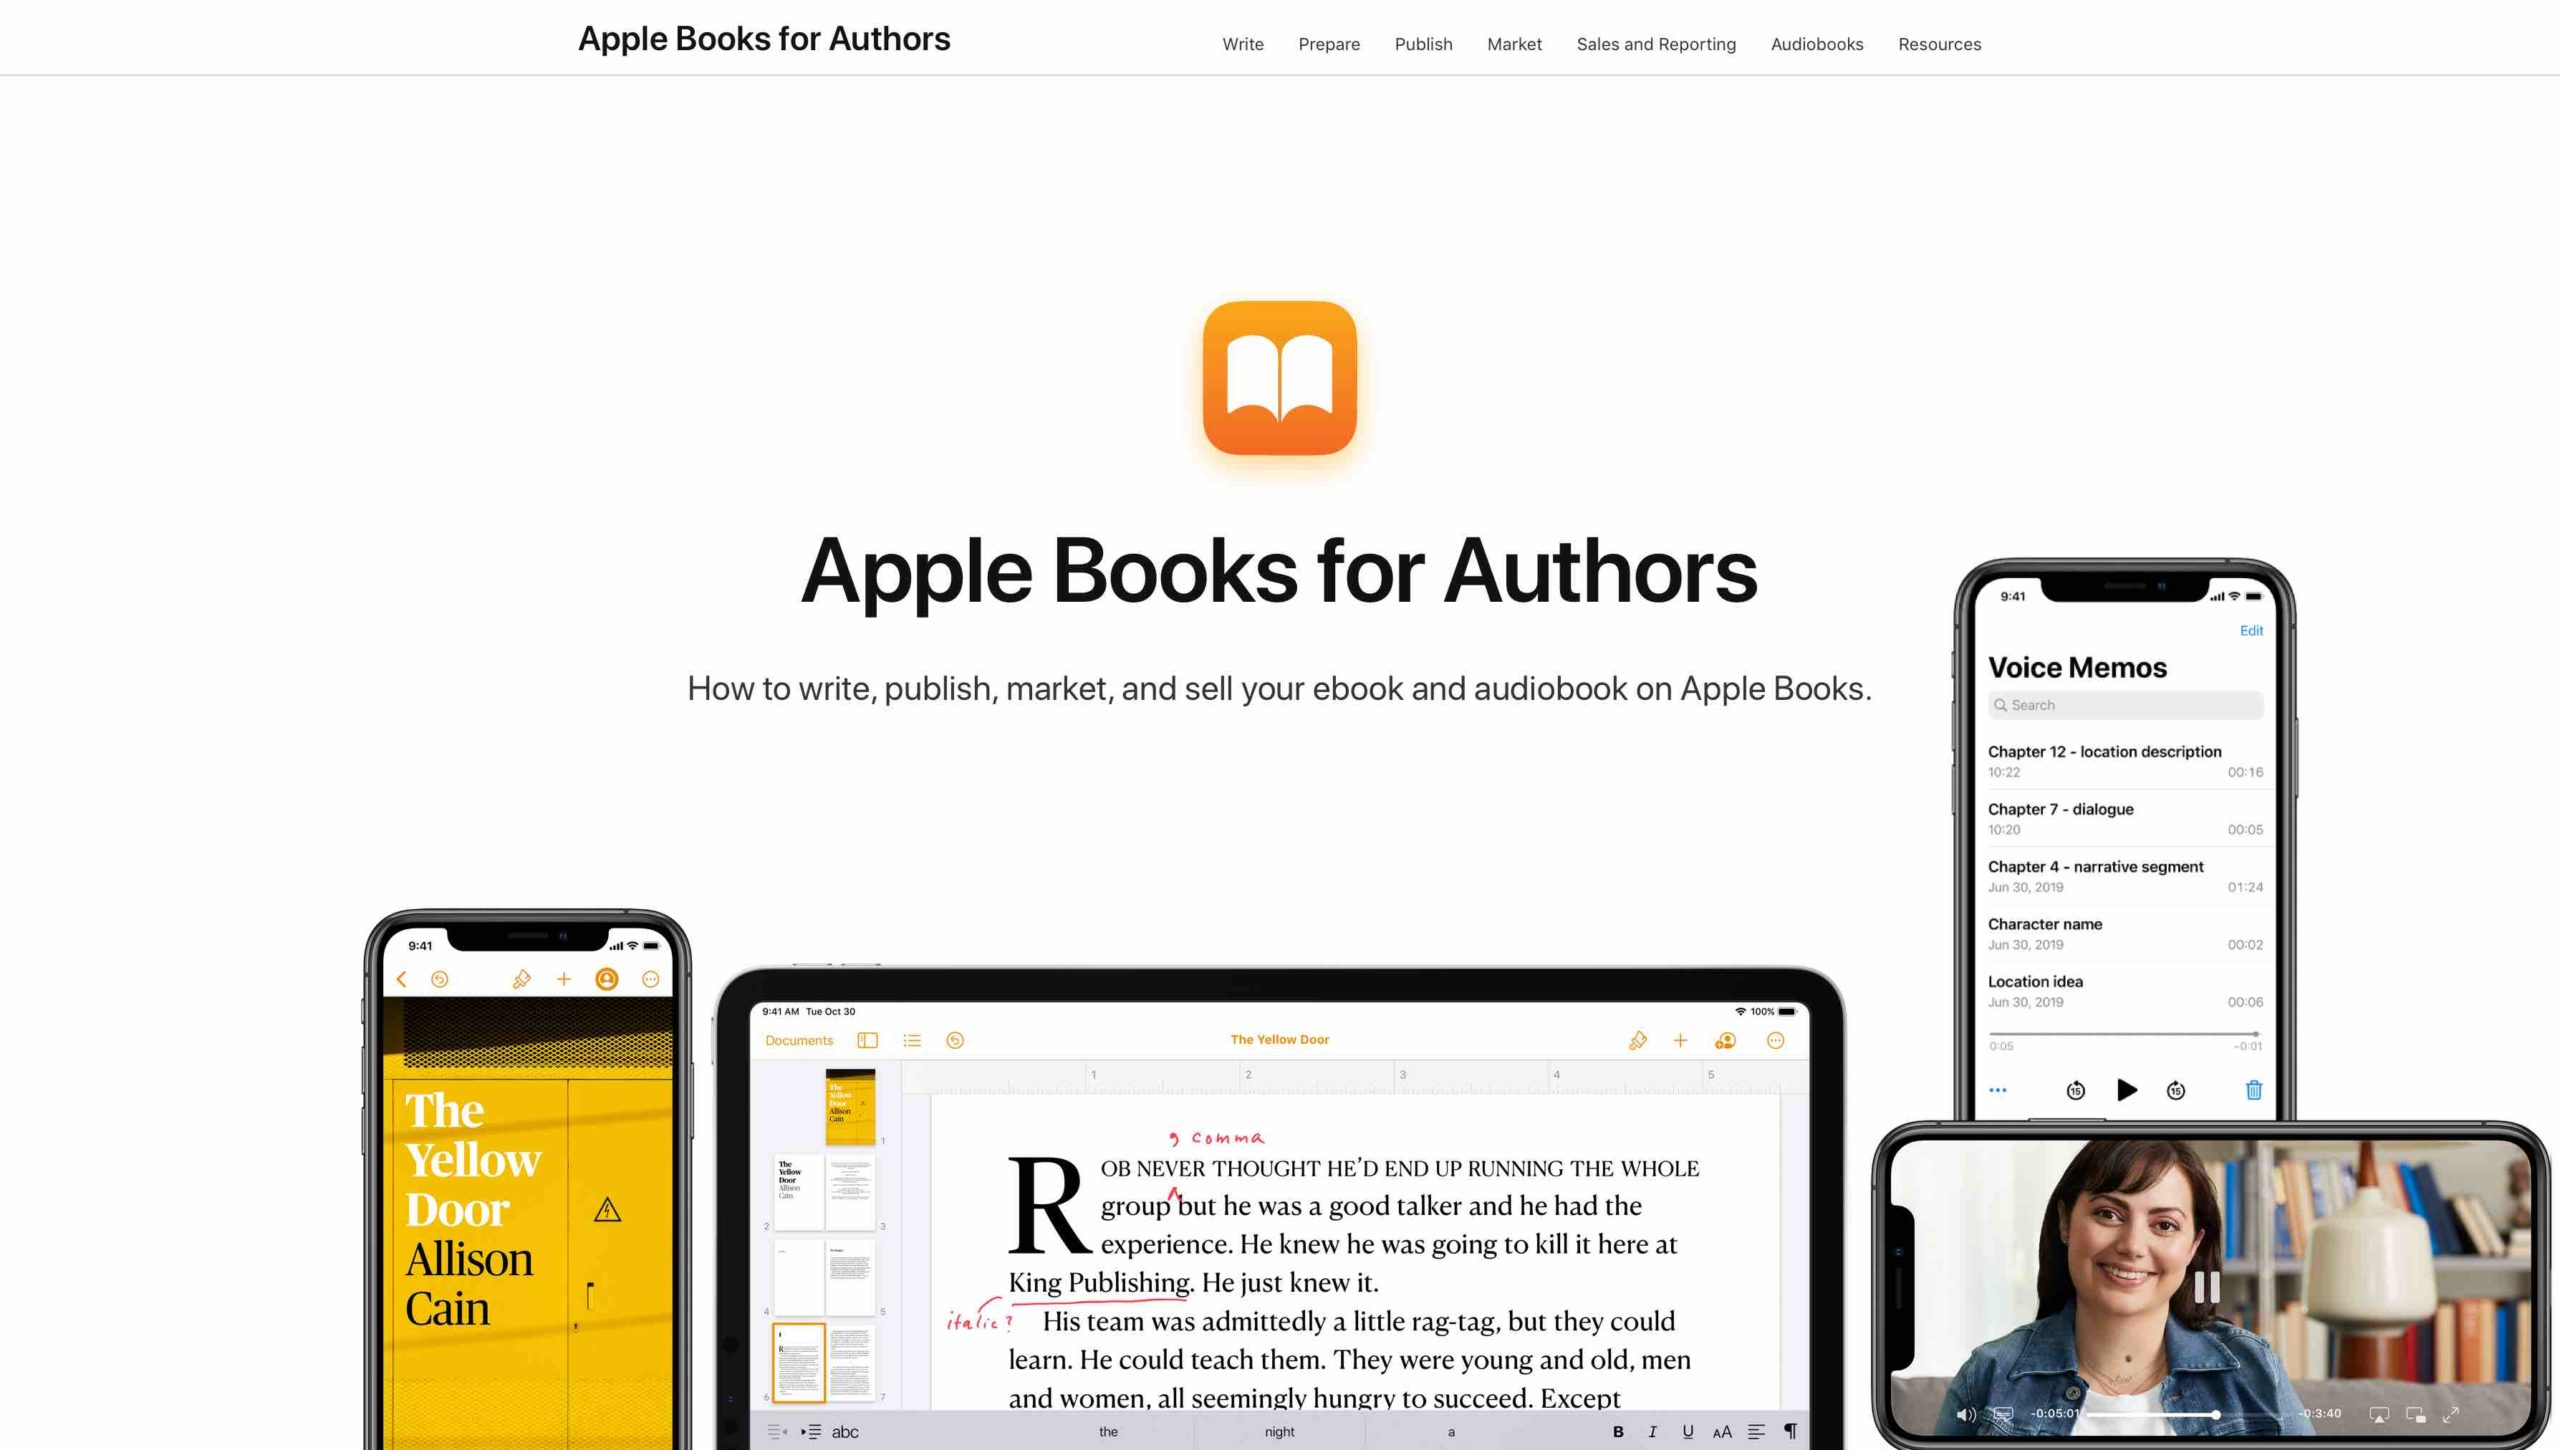 Página Apple Books for Authors